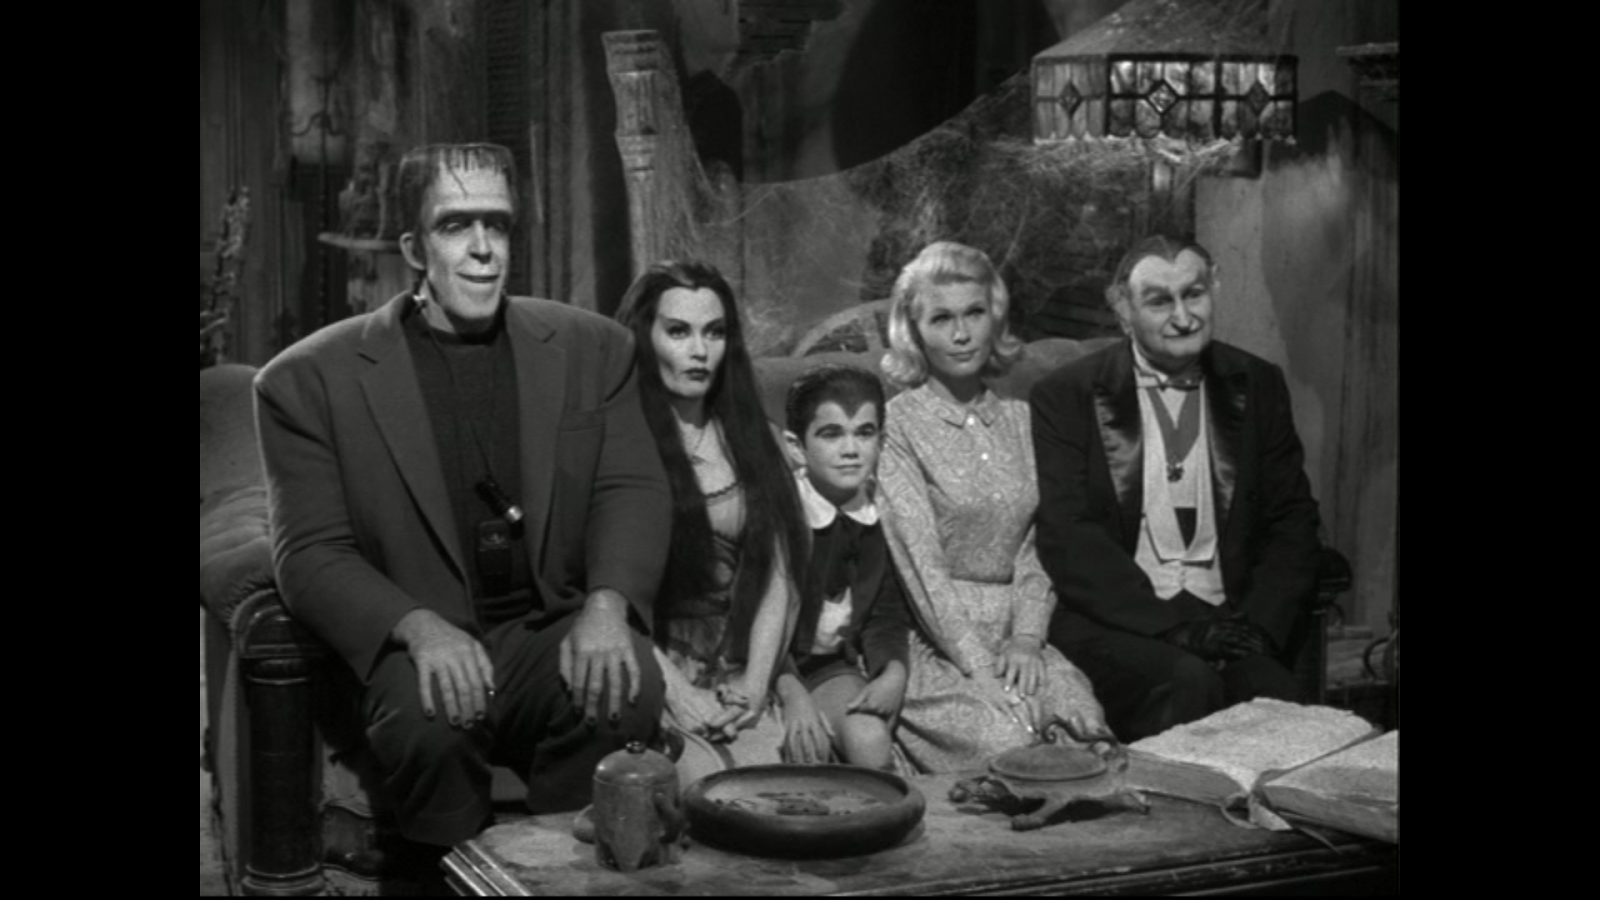 The Munsters Wallpaper and posed for the same 1600x900